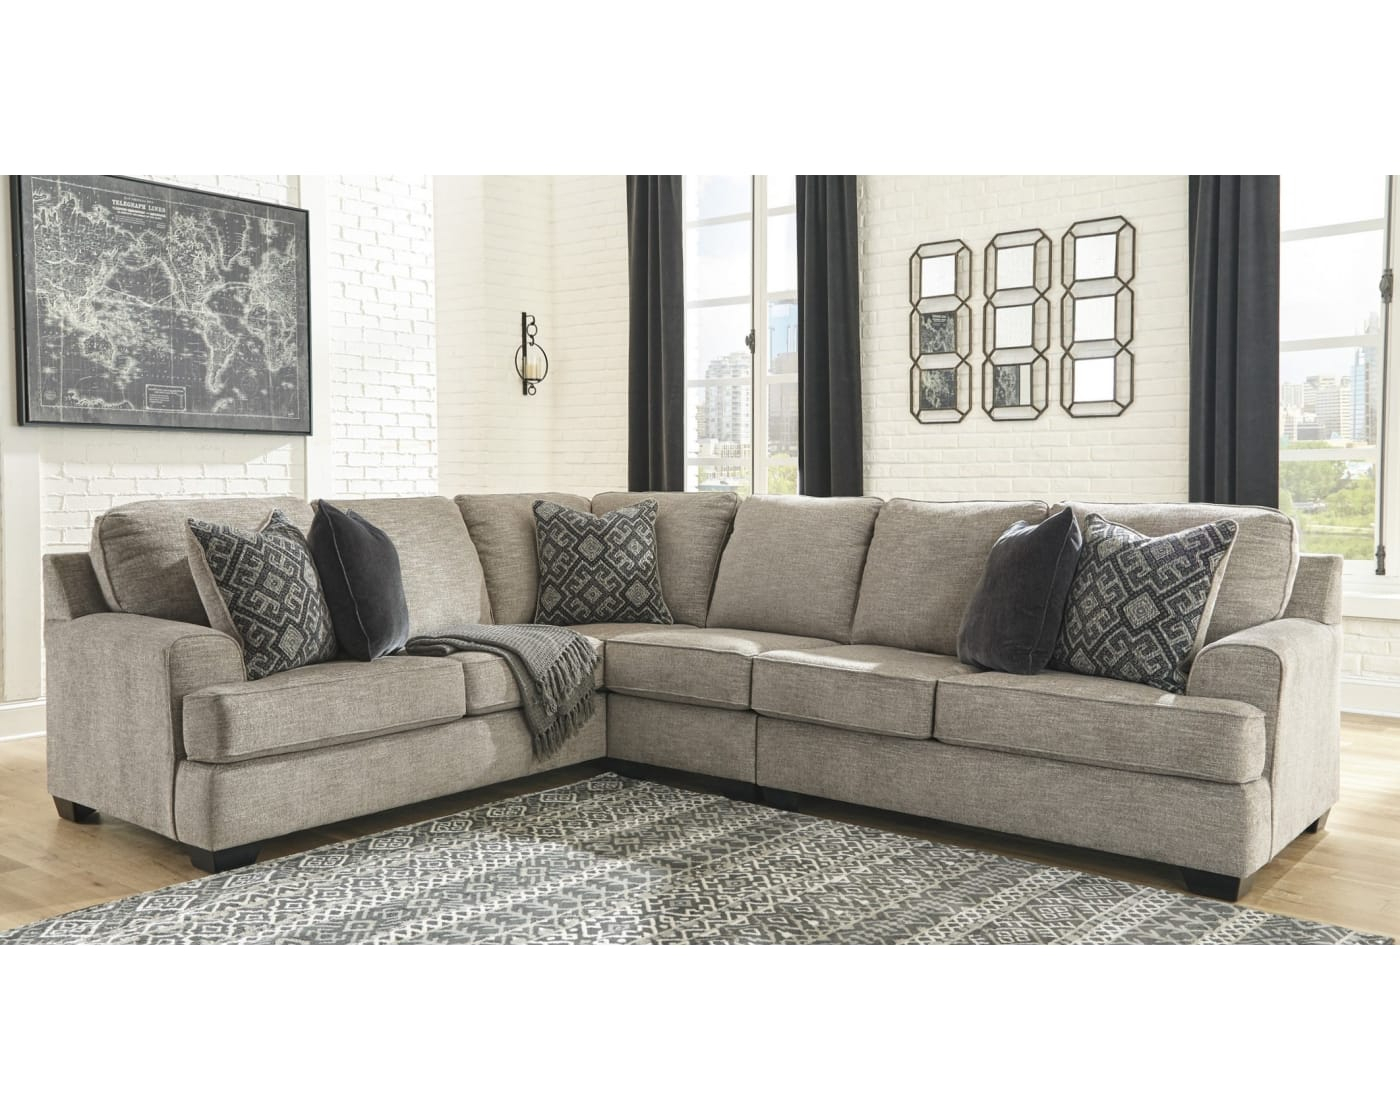 Bovarian Stone 3 Piece Right Facing Sectional Sofa In Dulce Right Sectional Sofas Twill Stone (View 5 of 15)